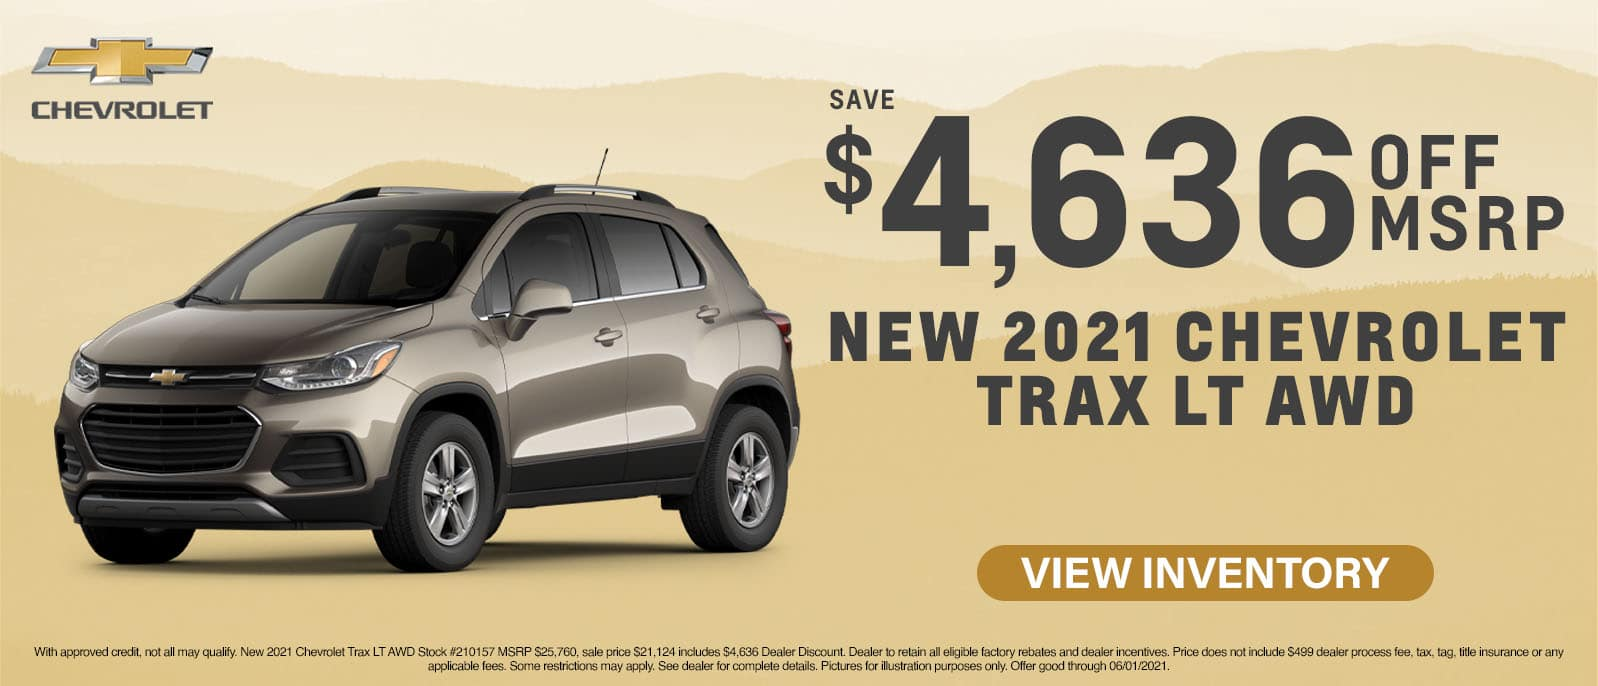 CRCH-May 2021-2021 Chevrolet Trax